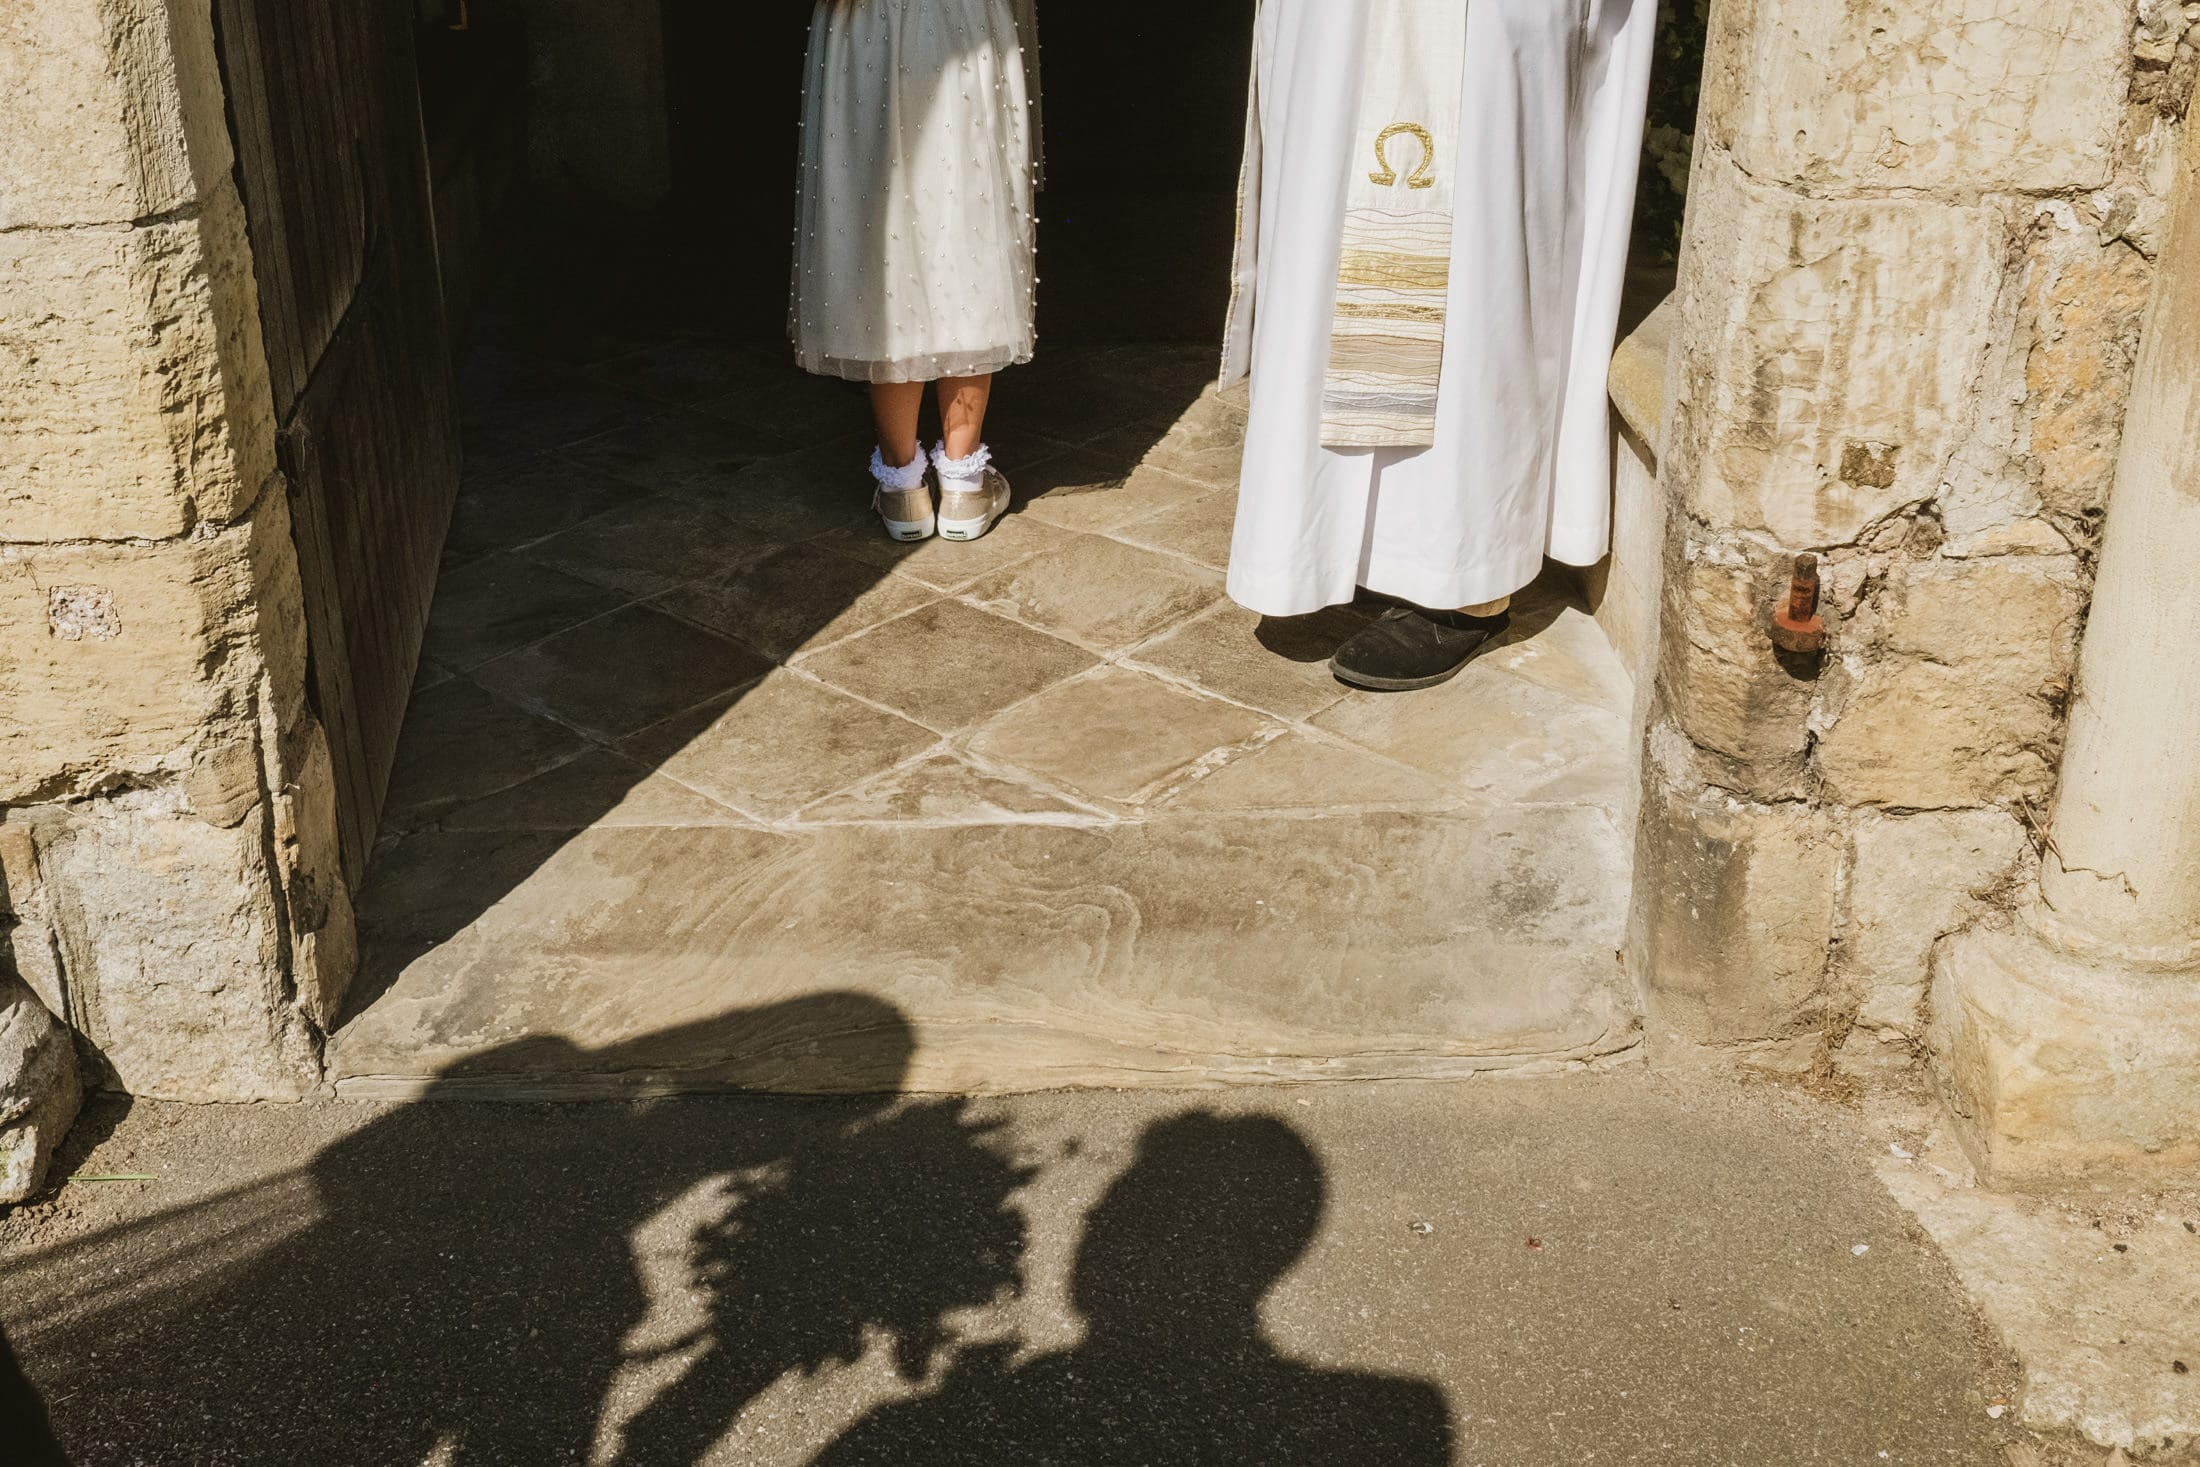 bride waiting to go into the church, shadows on the floor